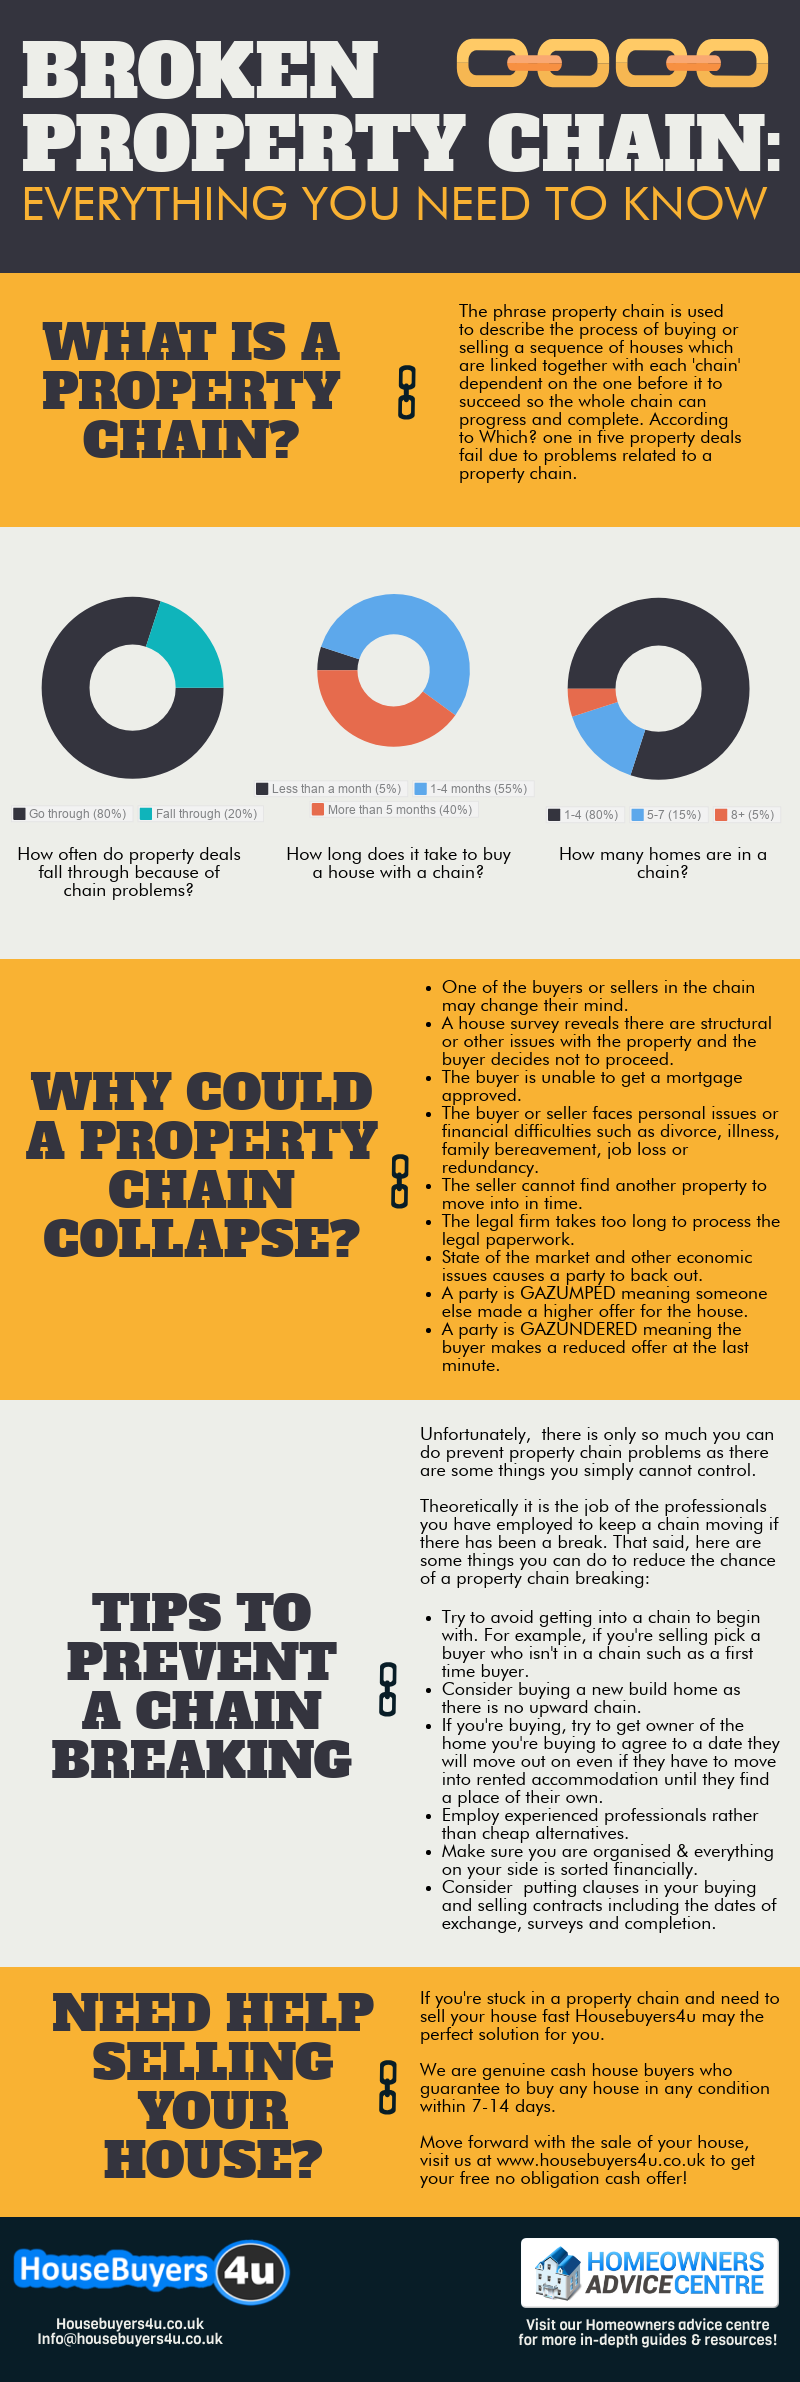 Broken property chain, everything you need to know infographic